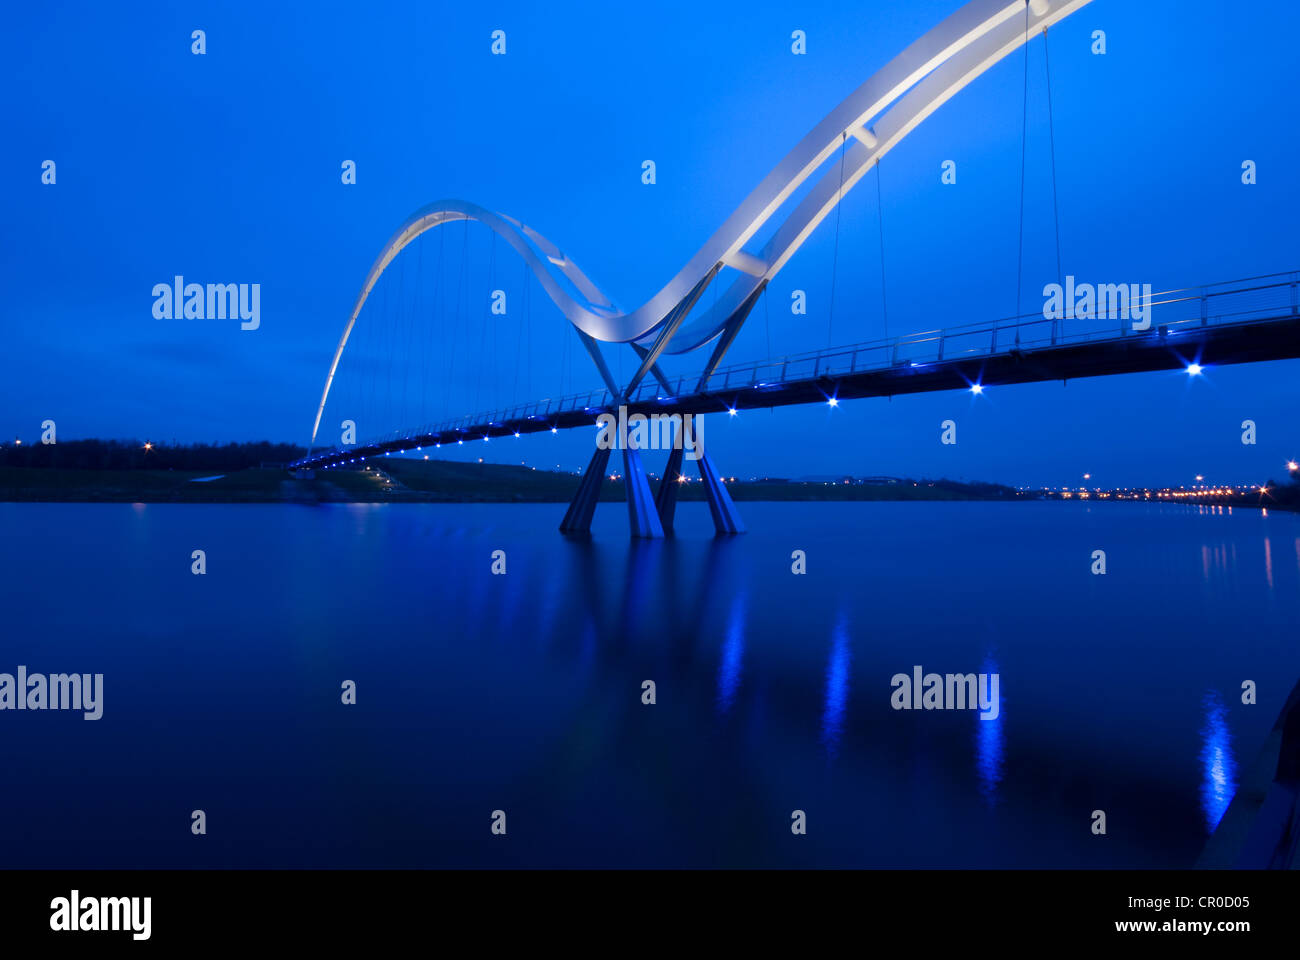 Infinity Bridge, Stockton on Tees, Cleveland. UK GB - Stock Image